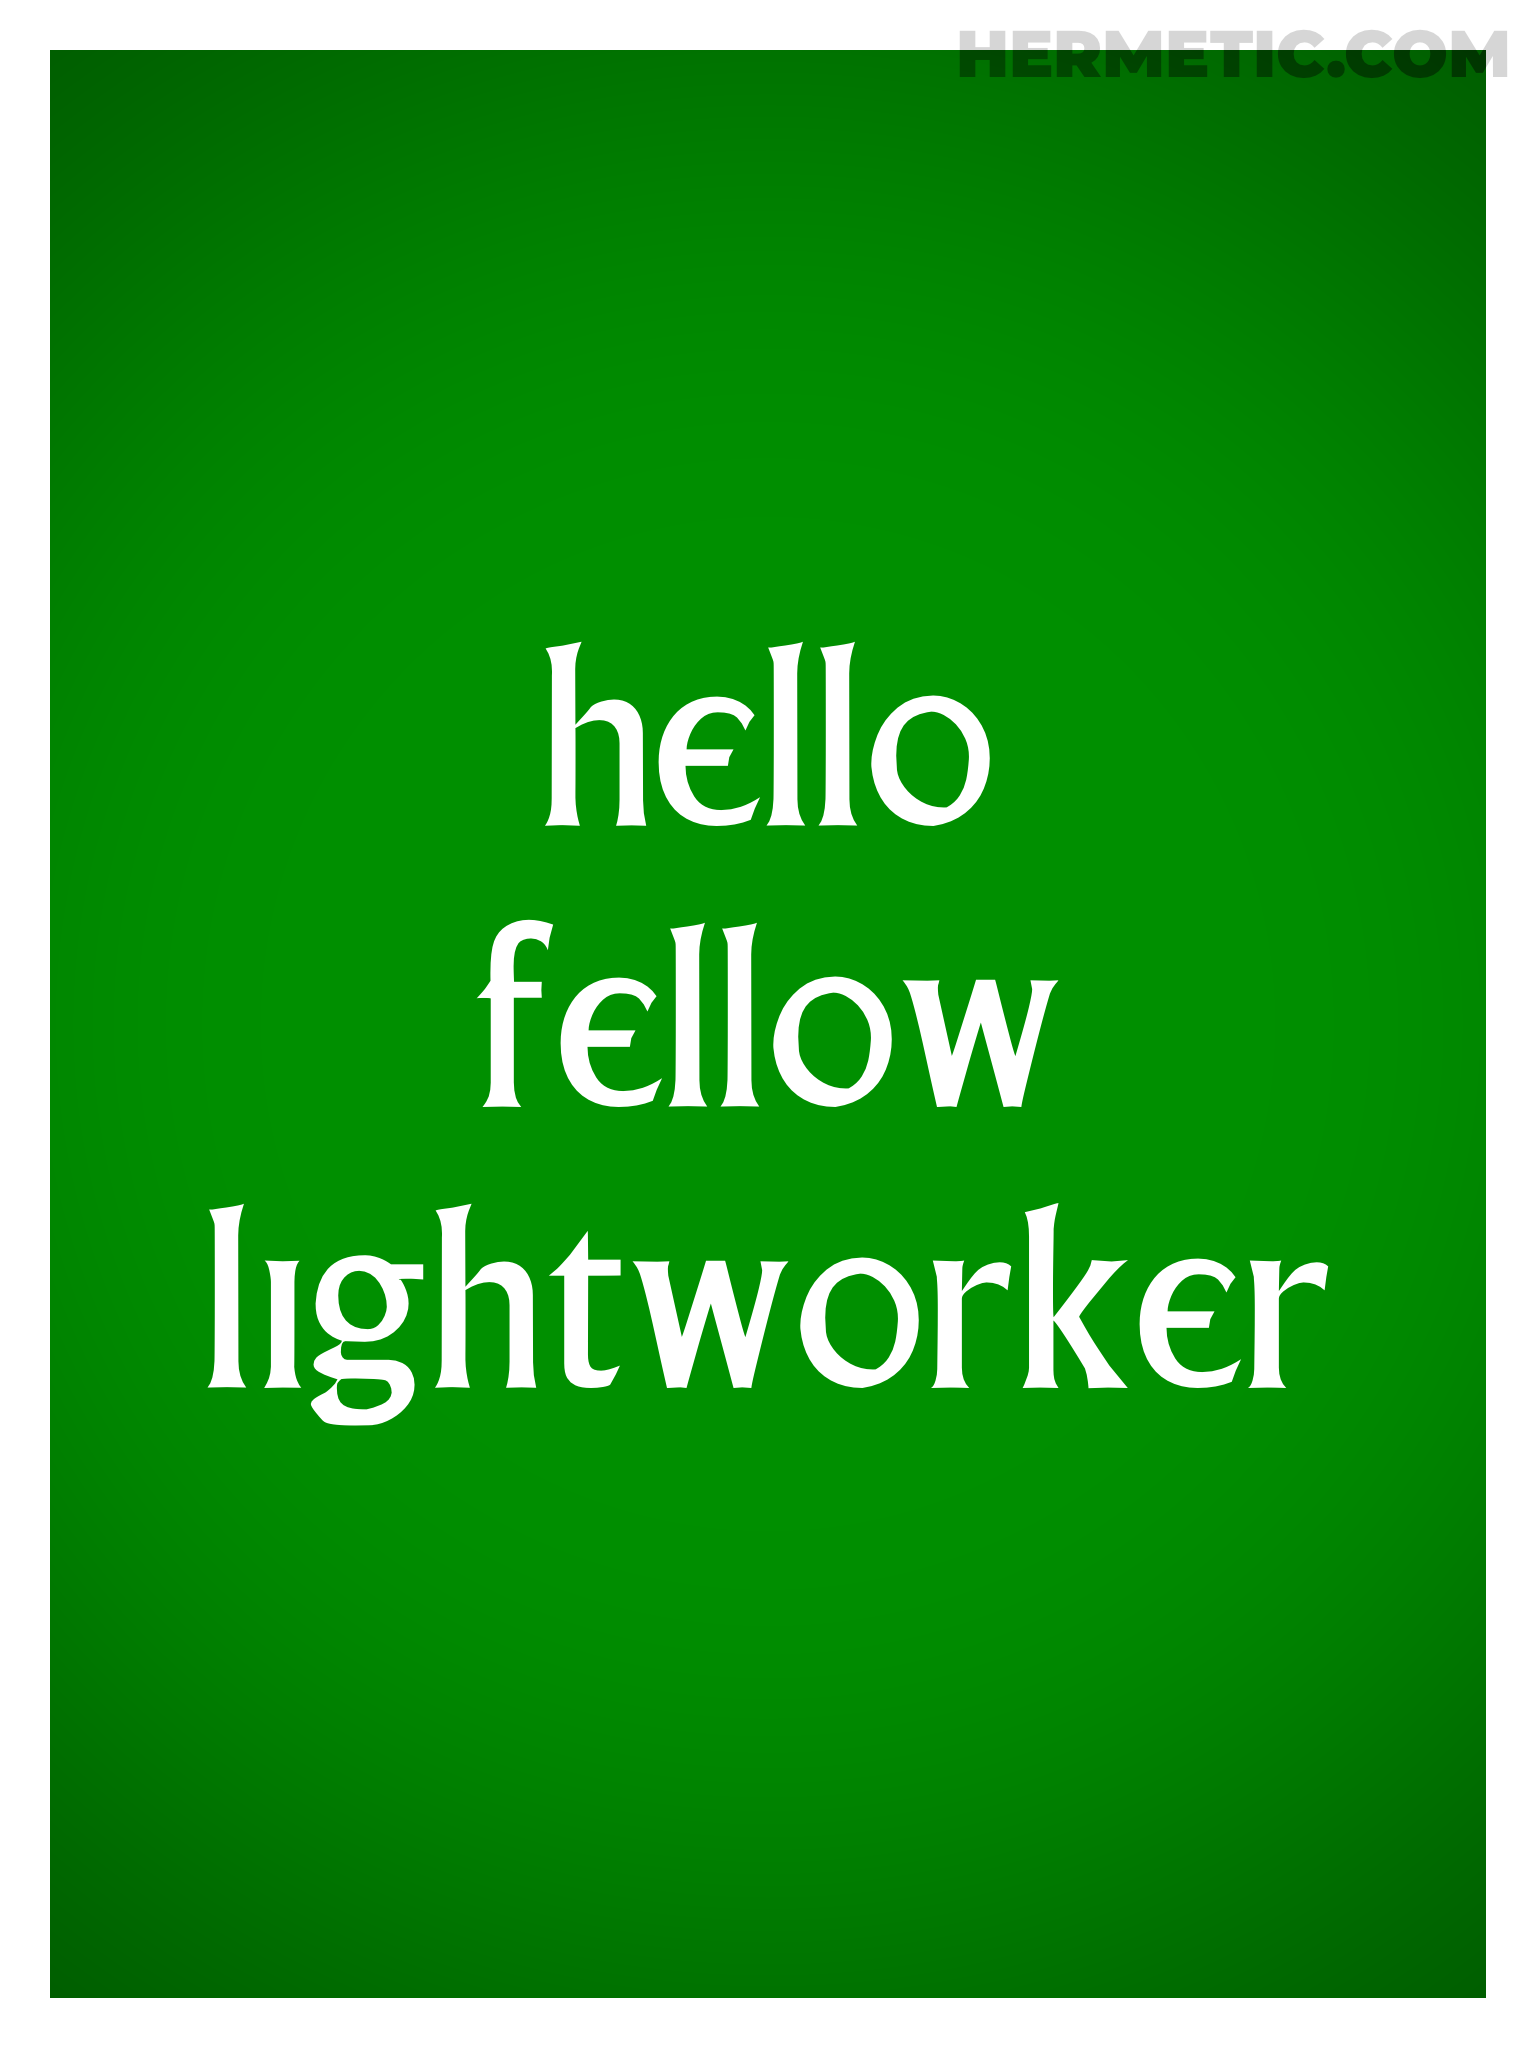 Village HELLO FELLOW LIGHTWORKER Propaganda Poster from Hermetic Library Office of the Ministry of Information